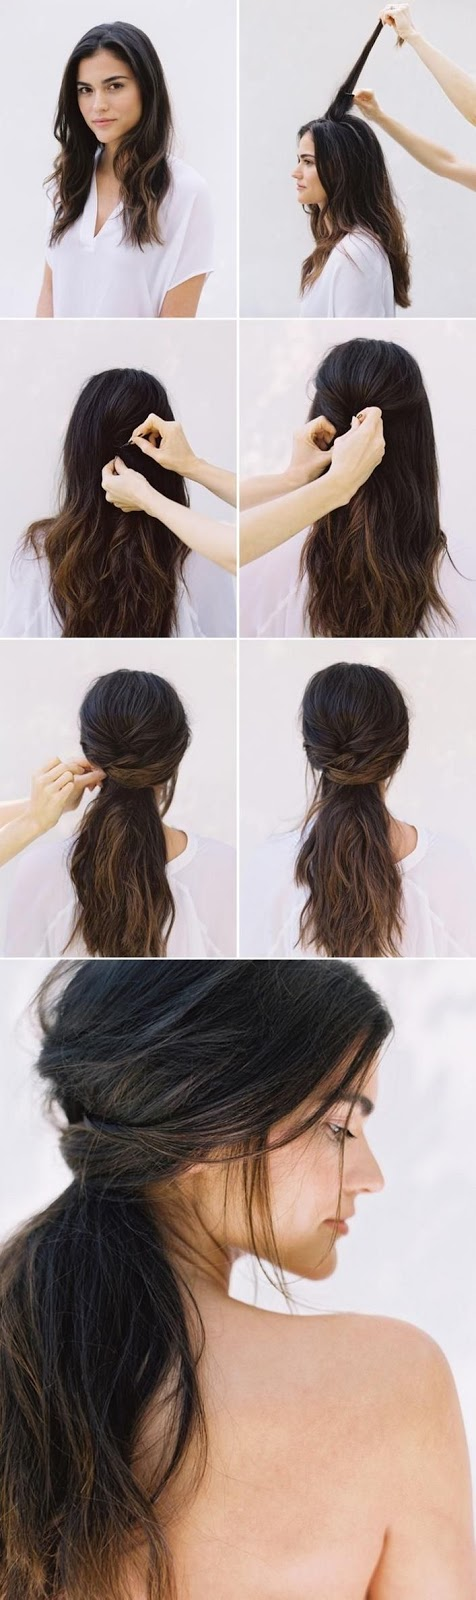 Easy Hairstyles For Thick Hair Interesting Ponytails Are Comfort And Simplicity Way To Style Your Hair New Few